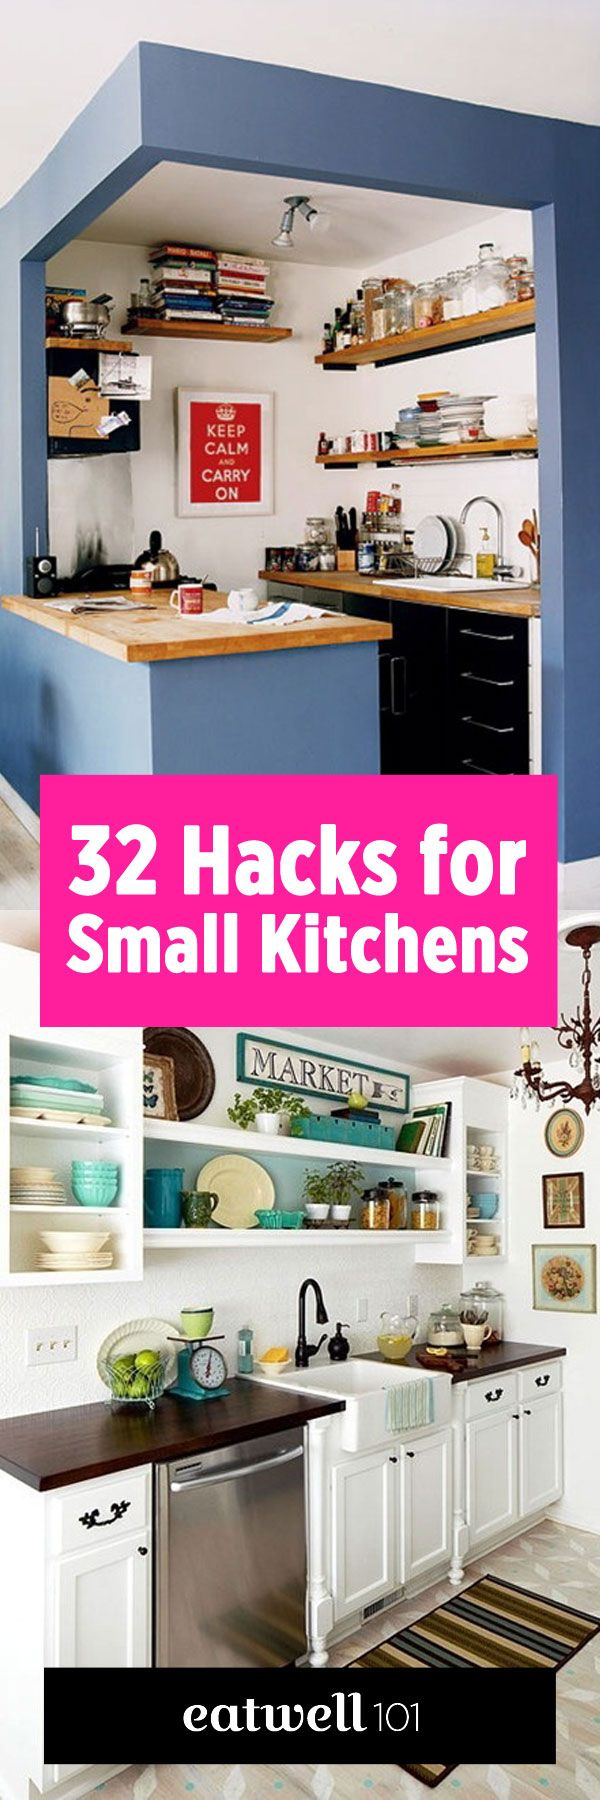 Best 25 small kitchen diy ideas on pinterest small kitchen organization small kitchen ideas - Kitchen ideas decorating small kitchen ...